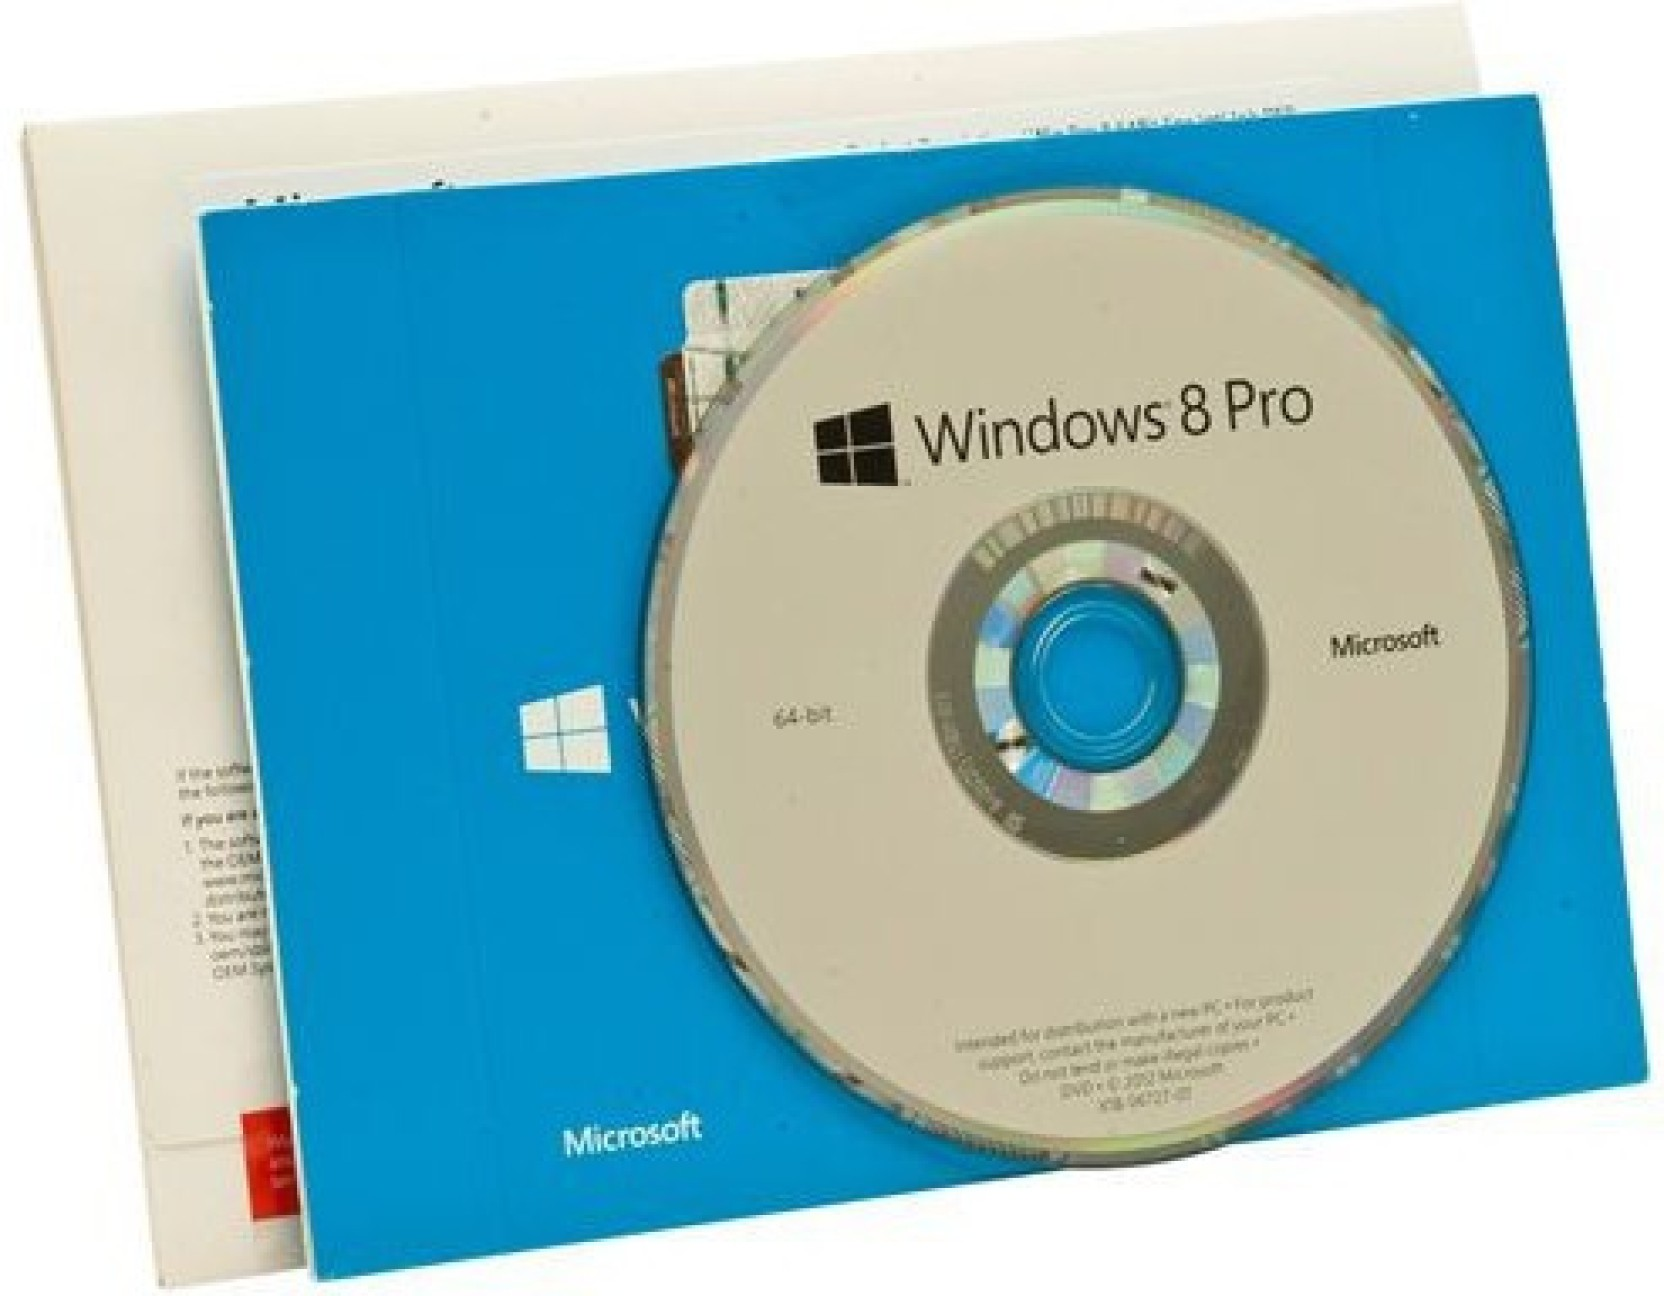 Microsoft windows 8 professional 32 64 bit microsoft for Arquitectura 32 o 64 bits